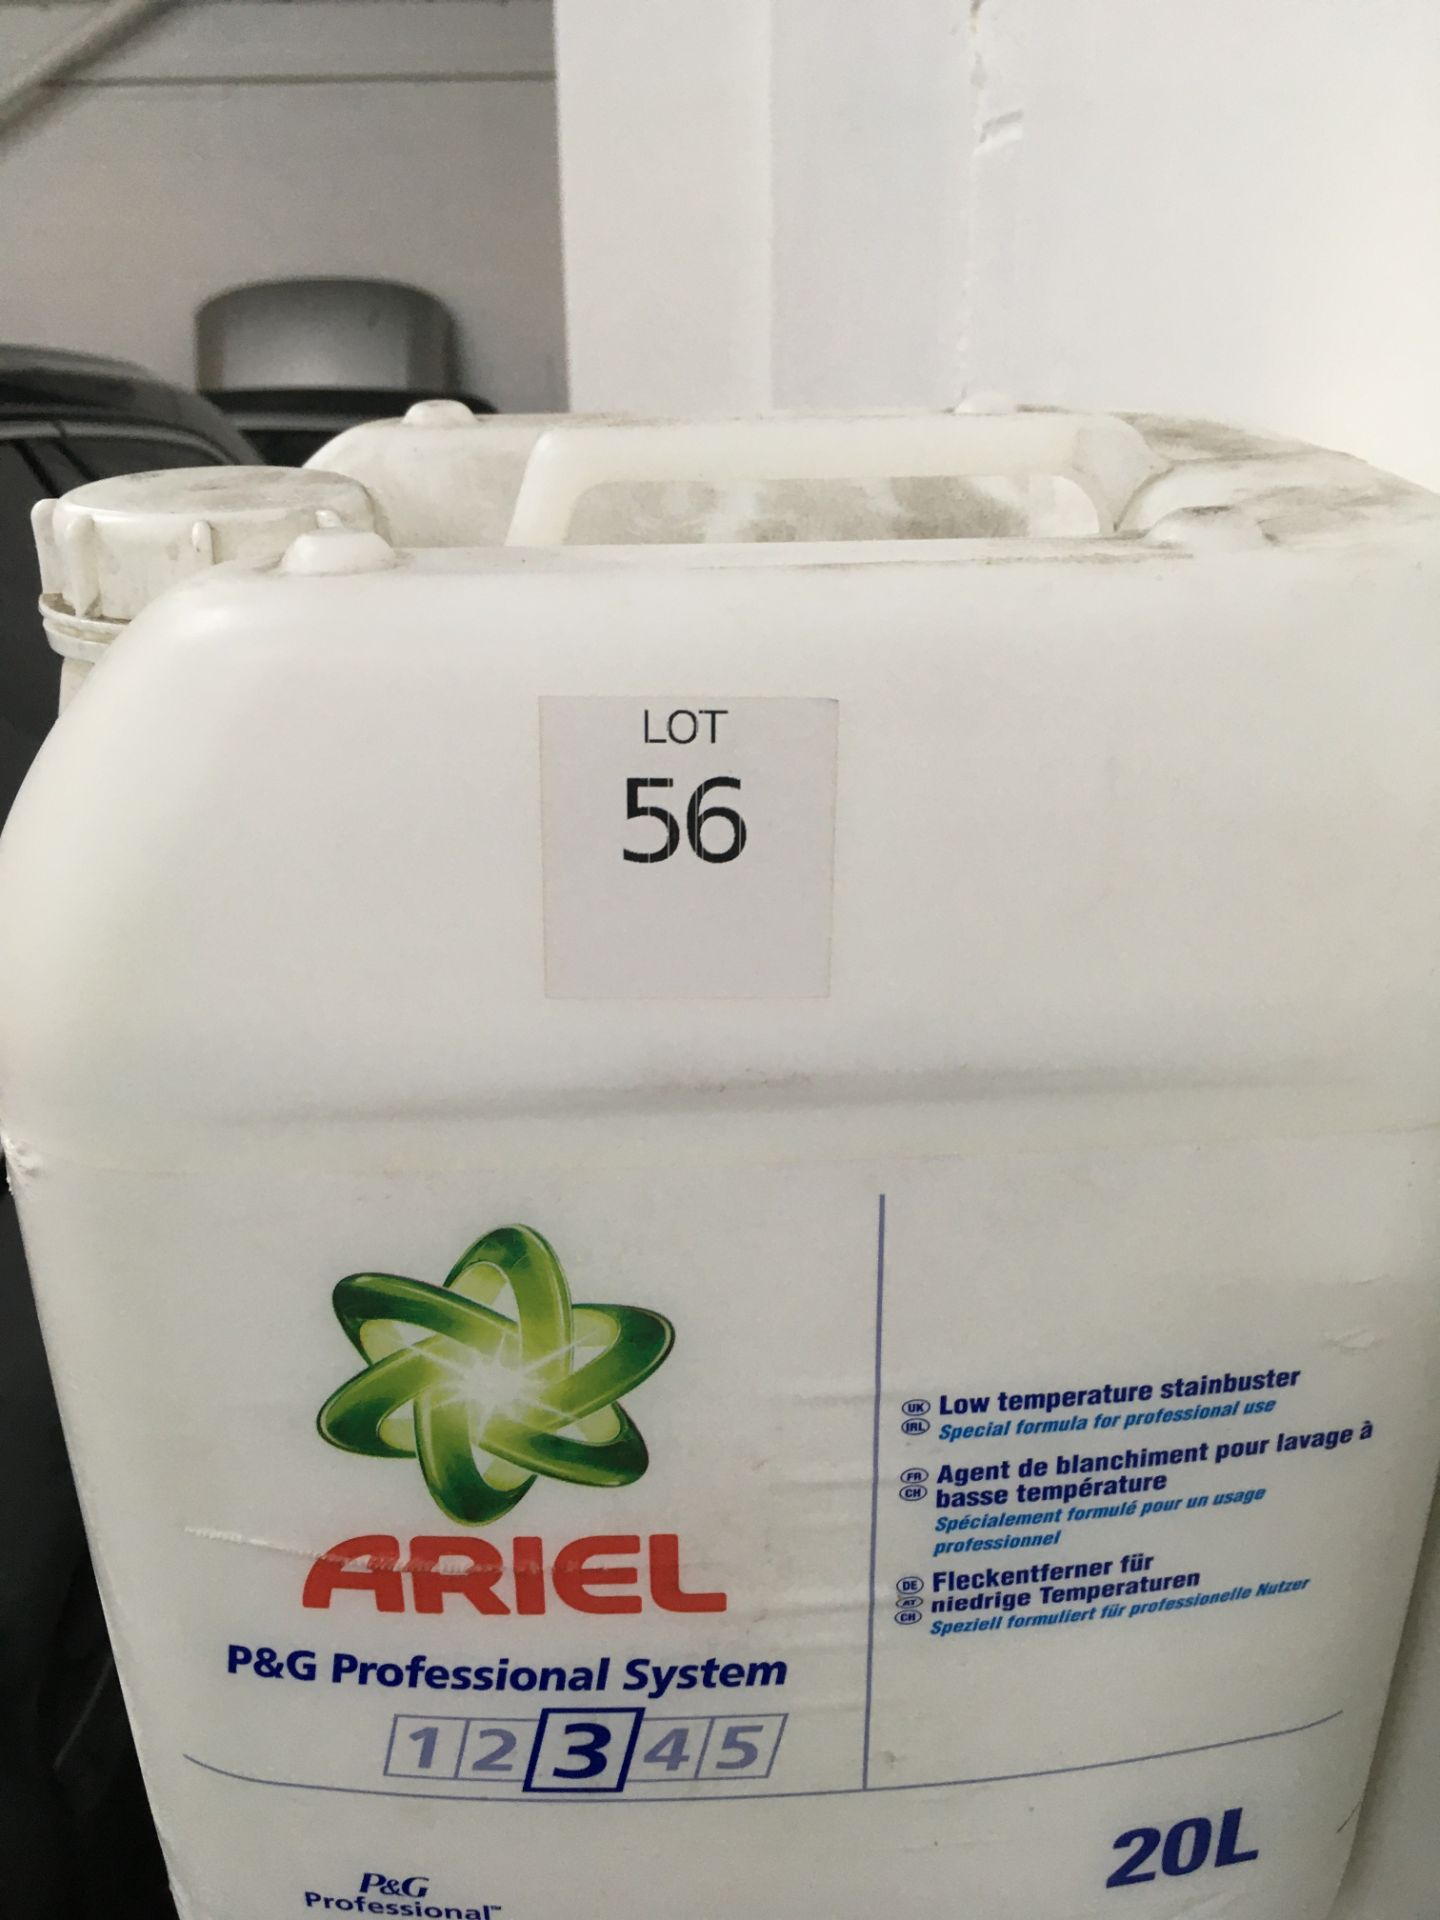 Lot 55A - 22 x Aerial Professional Stain Buster (20l)